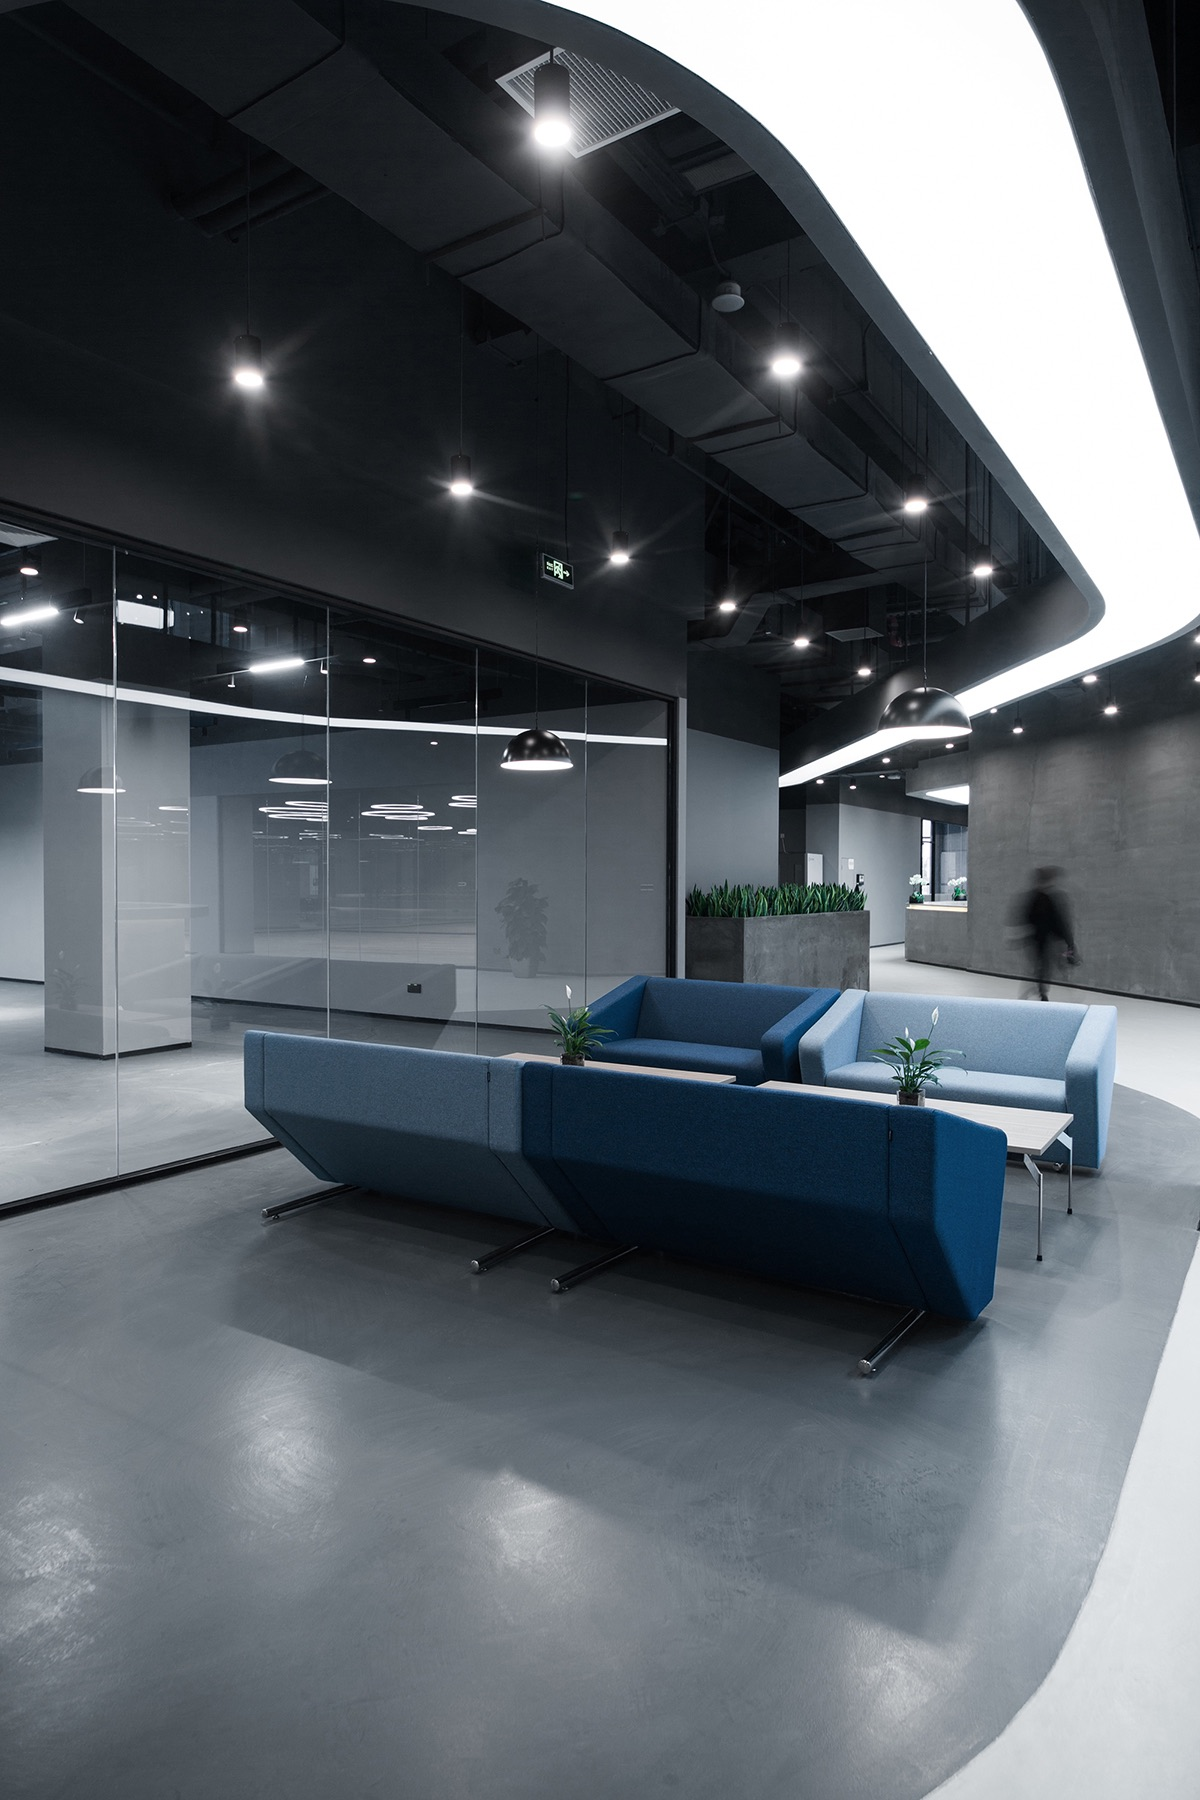 byton-nanjing-phase-two-office-18